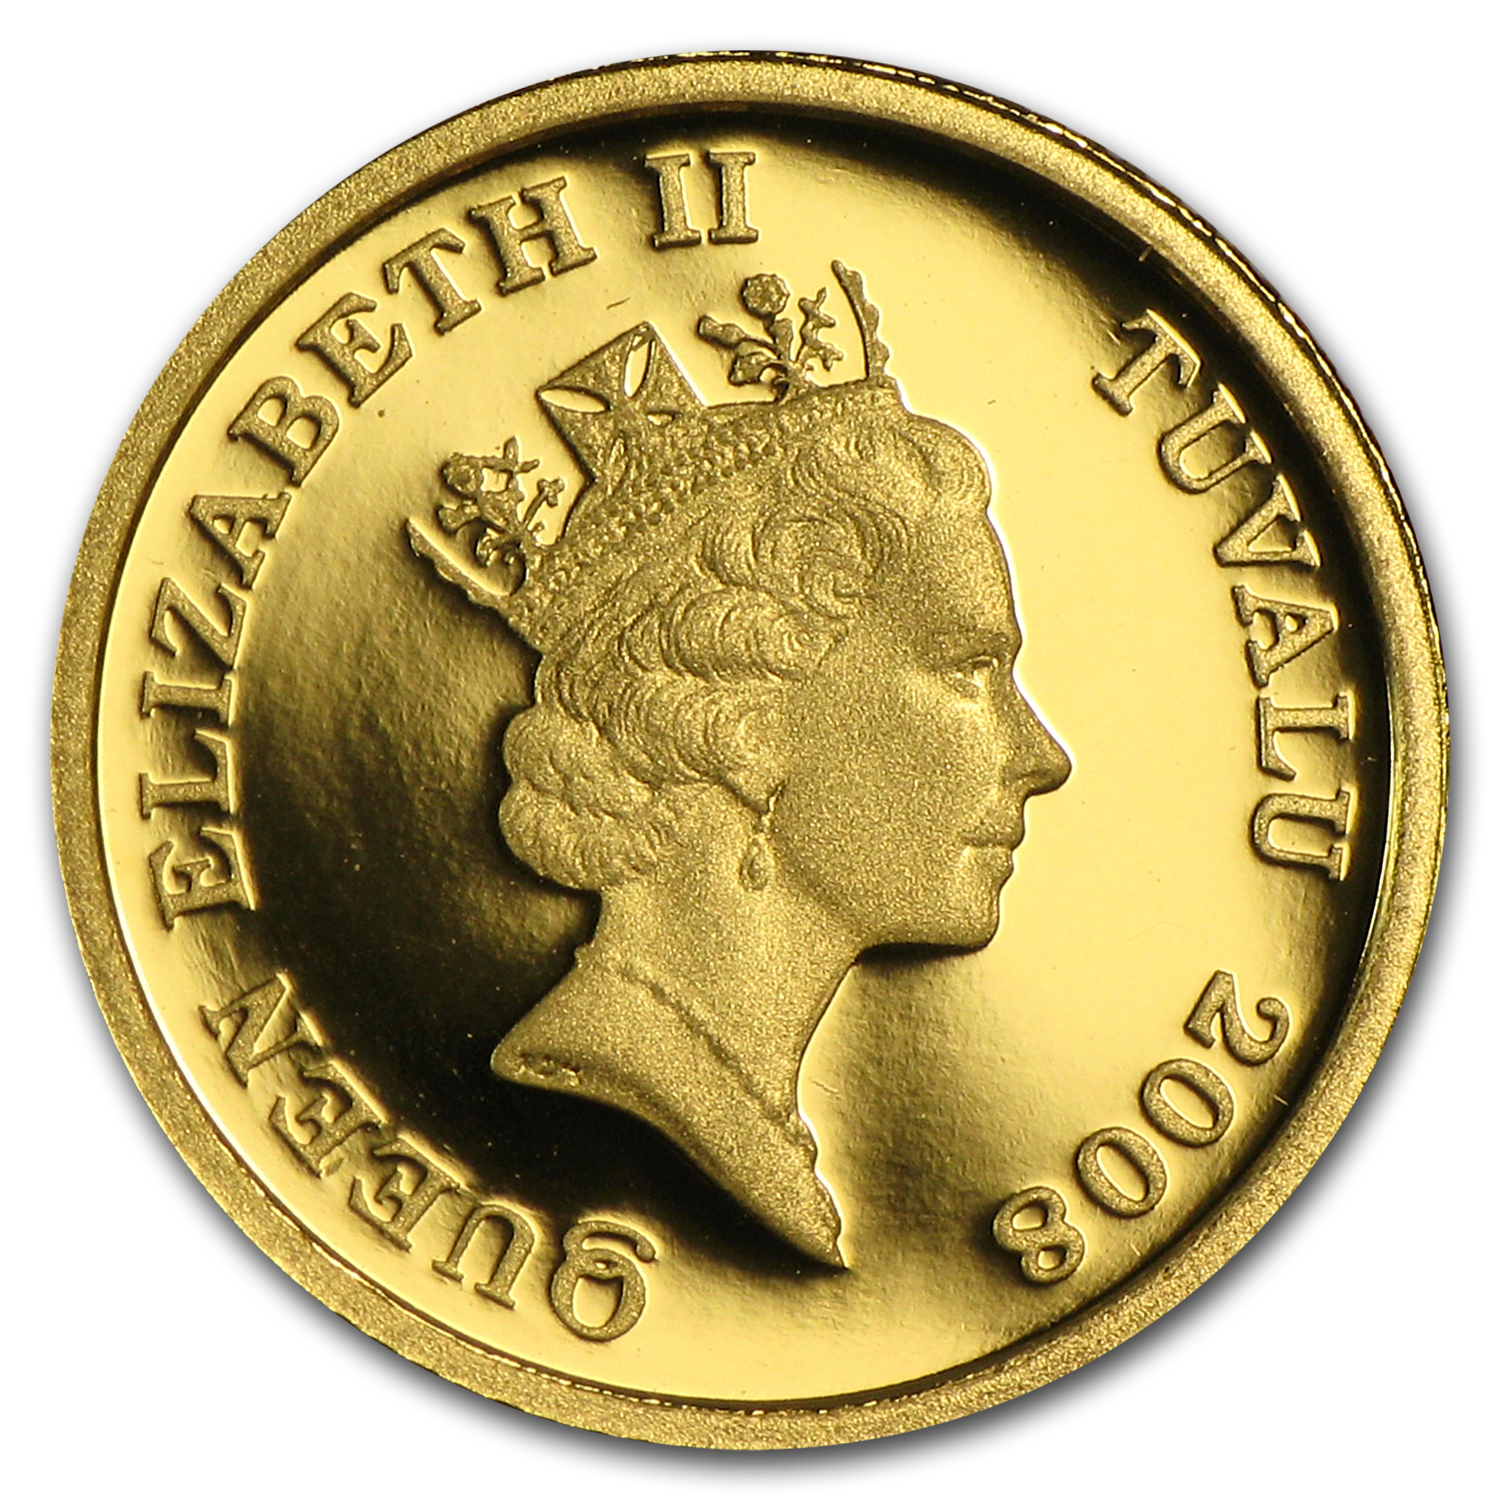 2008 Tuvalu 1/25 oz Proof Gold Horse